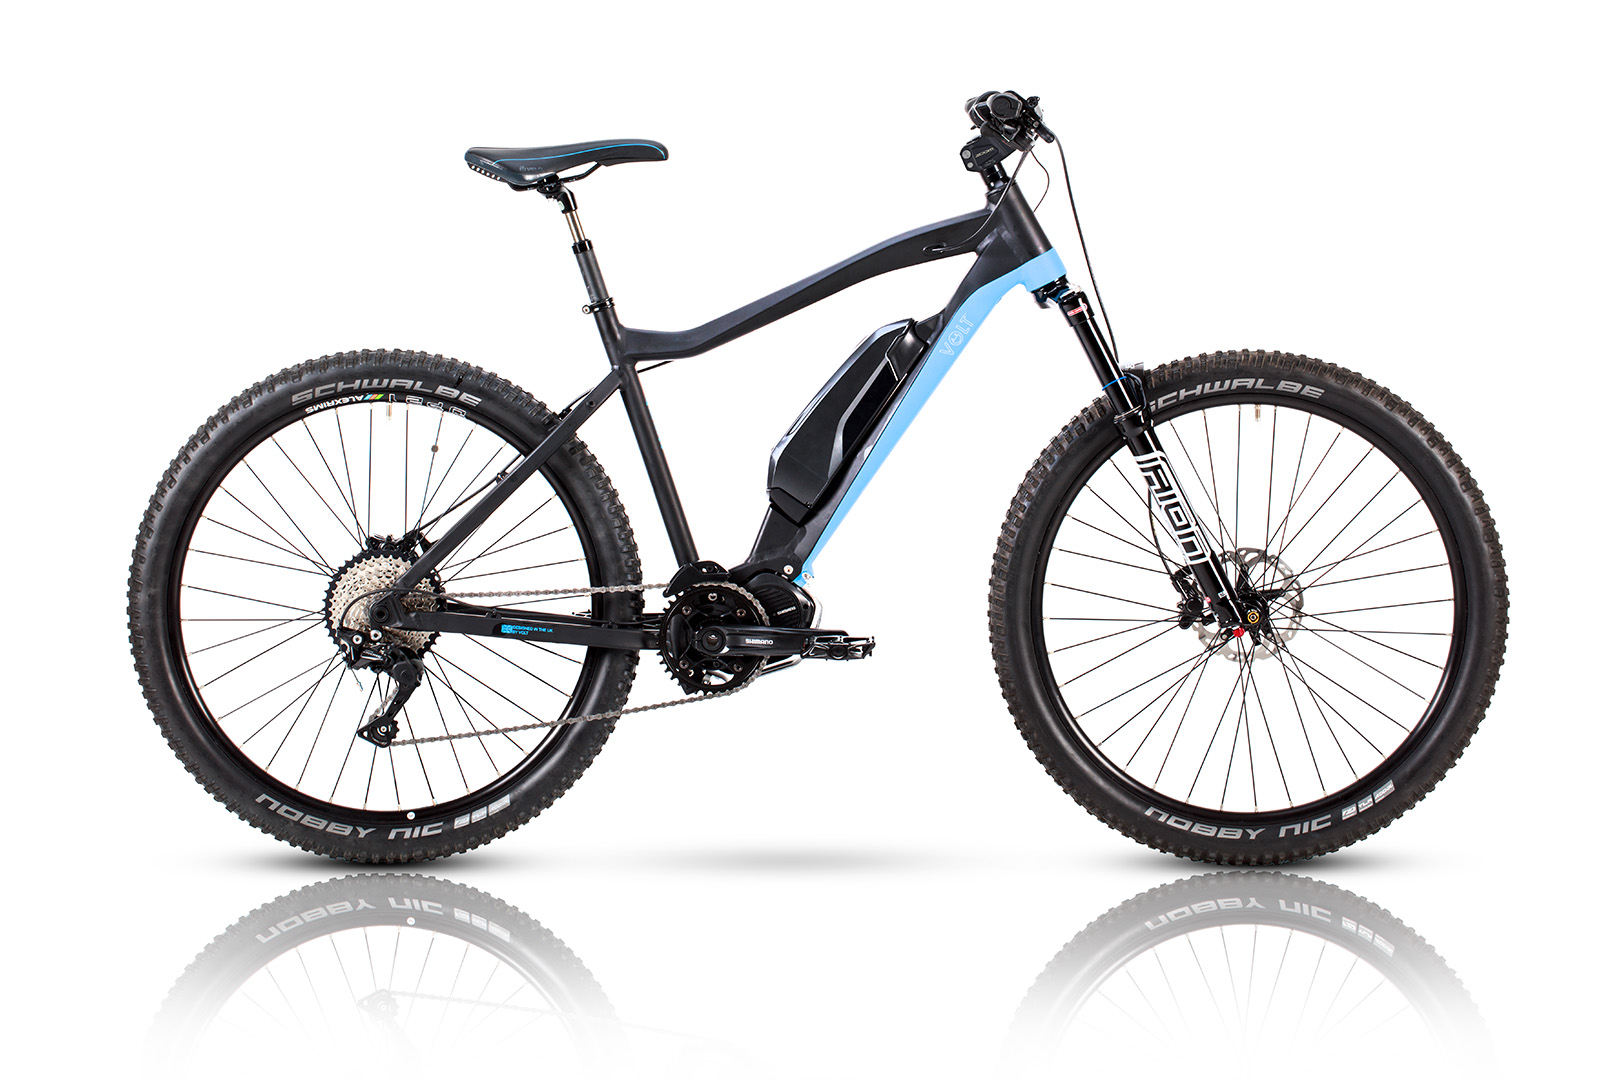 Apex Shimano STEPS e-bike from Volt